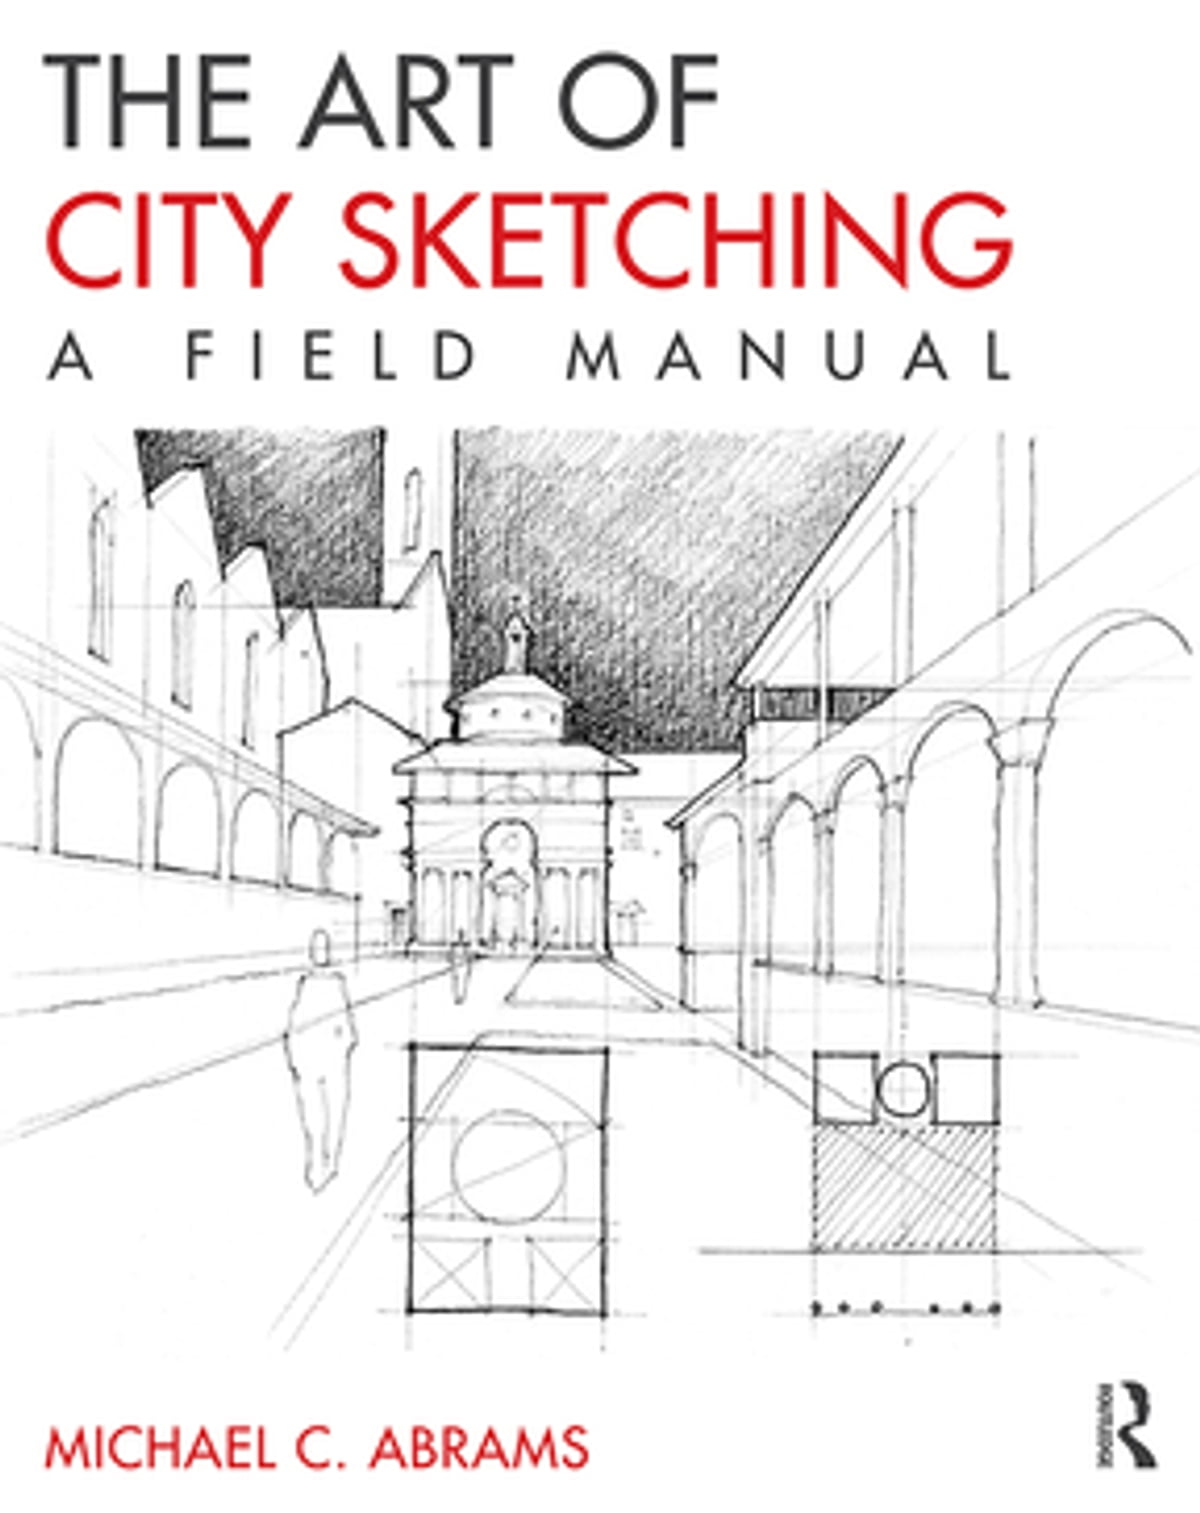 The Art of City Sketching eBook by Michael Abrams